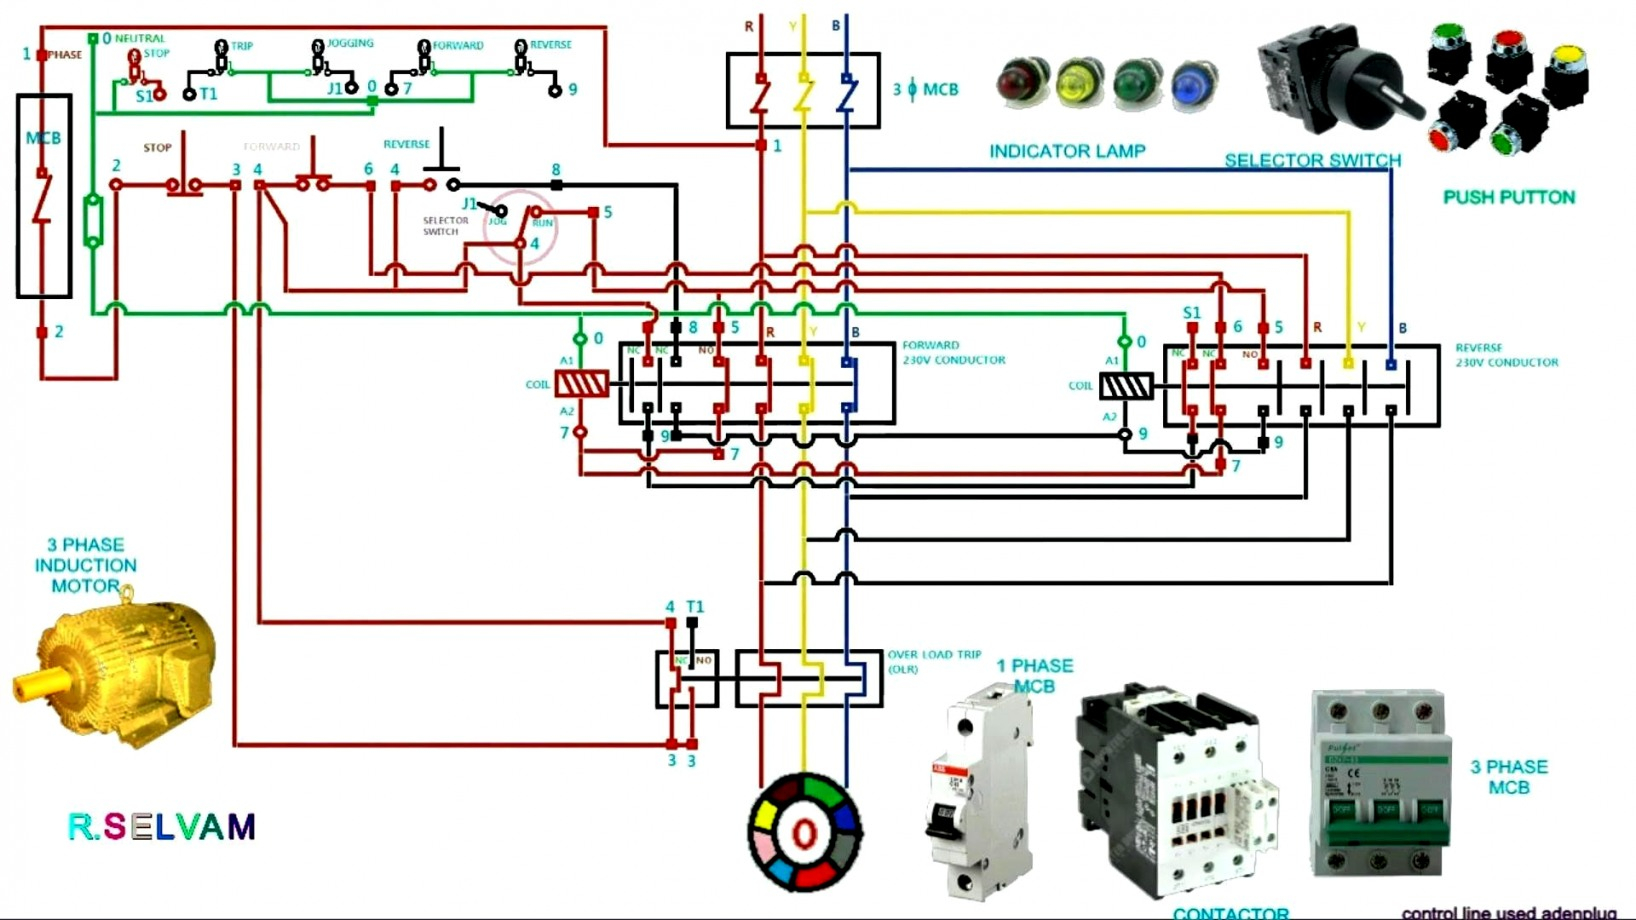 Start Stop Wiring Diagram 3 Phase With Contactor | Wiring Diagram - Motor Starter Wiring Diagram Start Stop